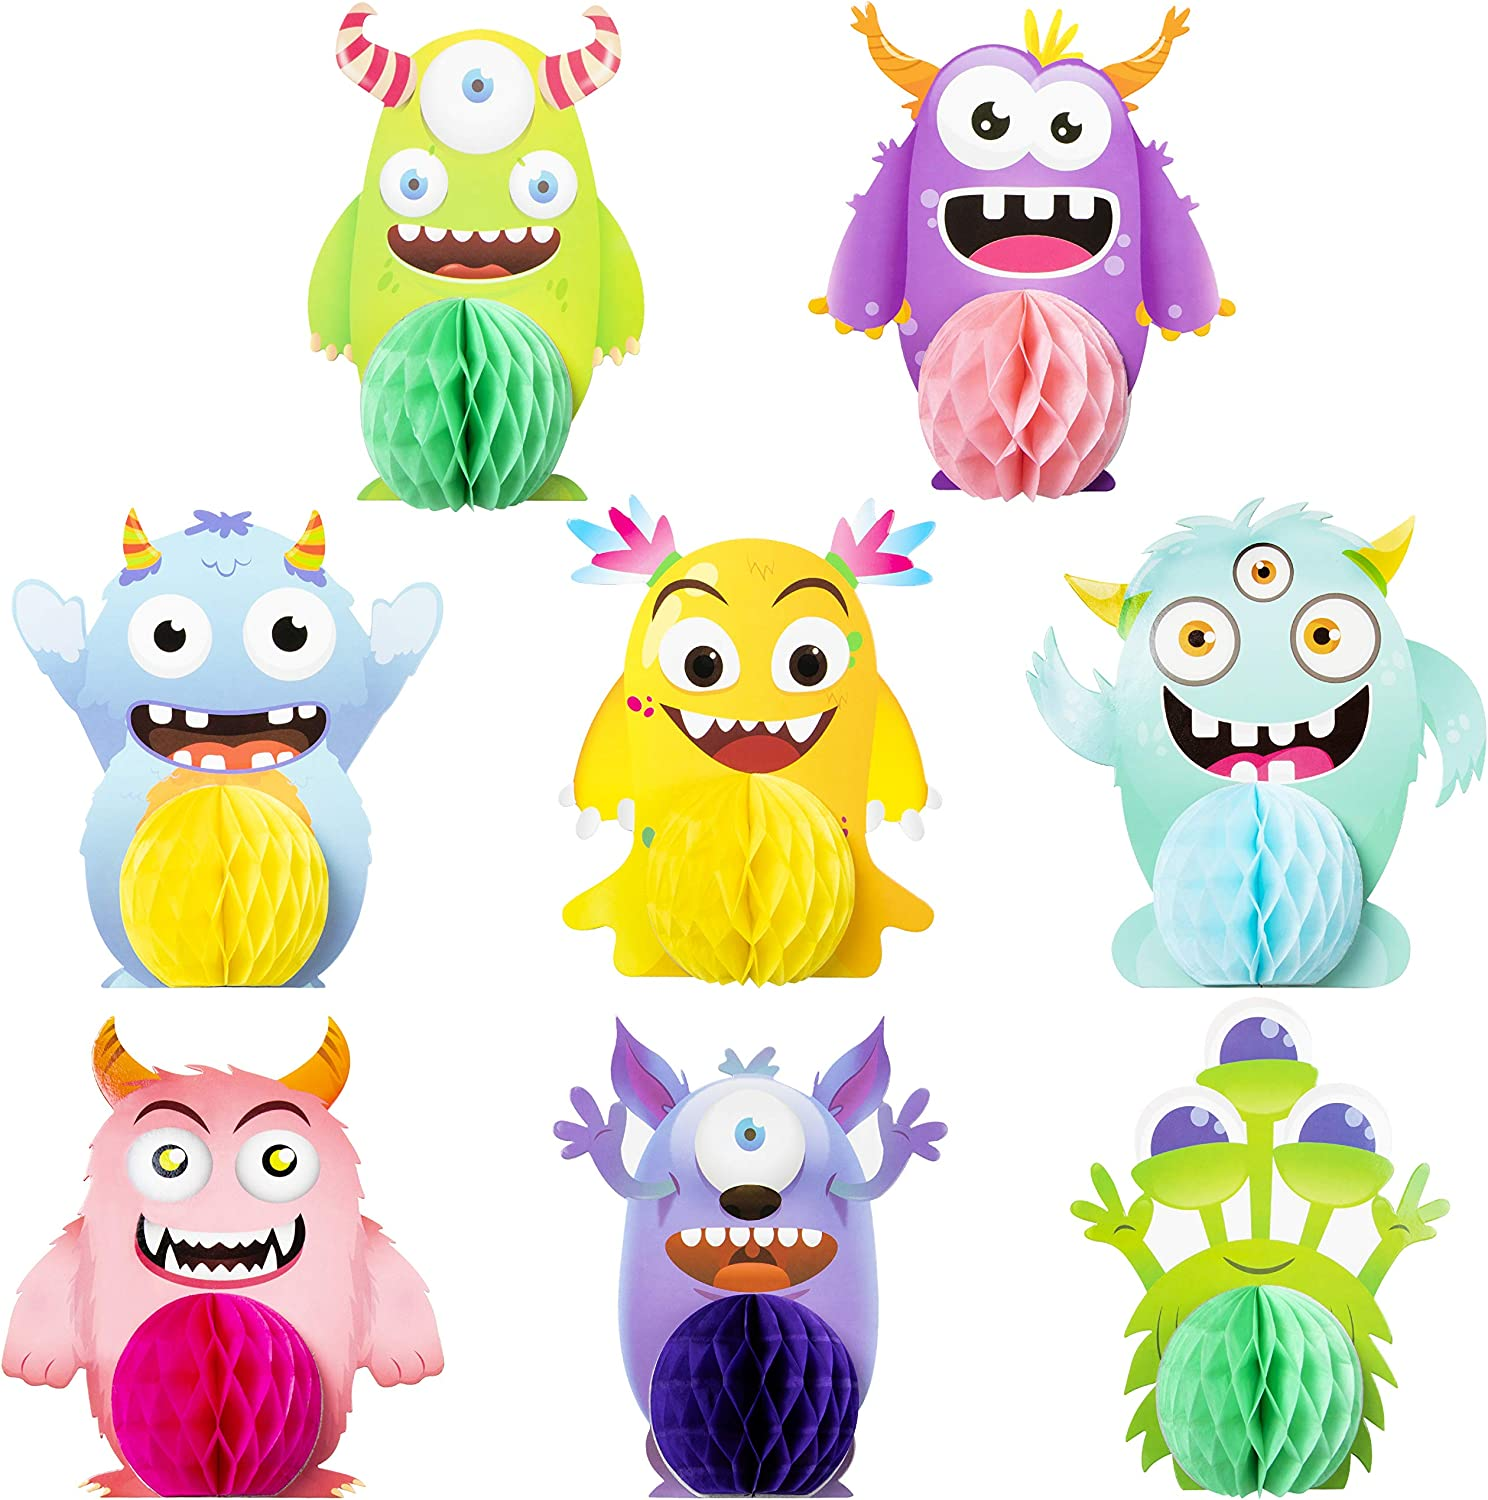 MALLMALL6 12Pcs Monster Honeycomb Centerpieces Party Table Decorations Monsters Themed Birthday Party Supplies Double Sided Table Topper Baby Shower Party Favors Photo Booth Props Room Decor for Kids